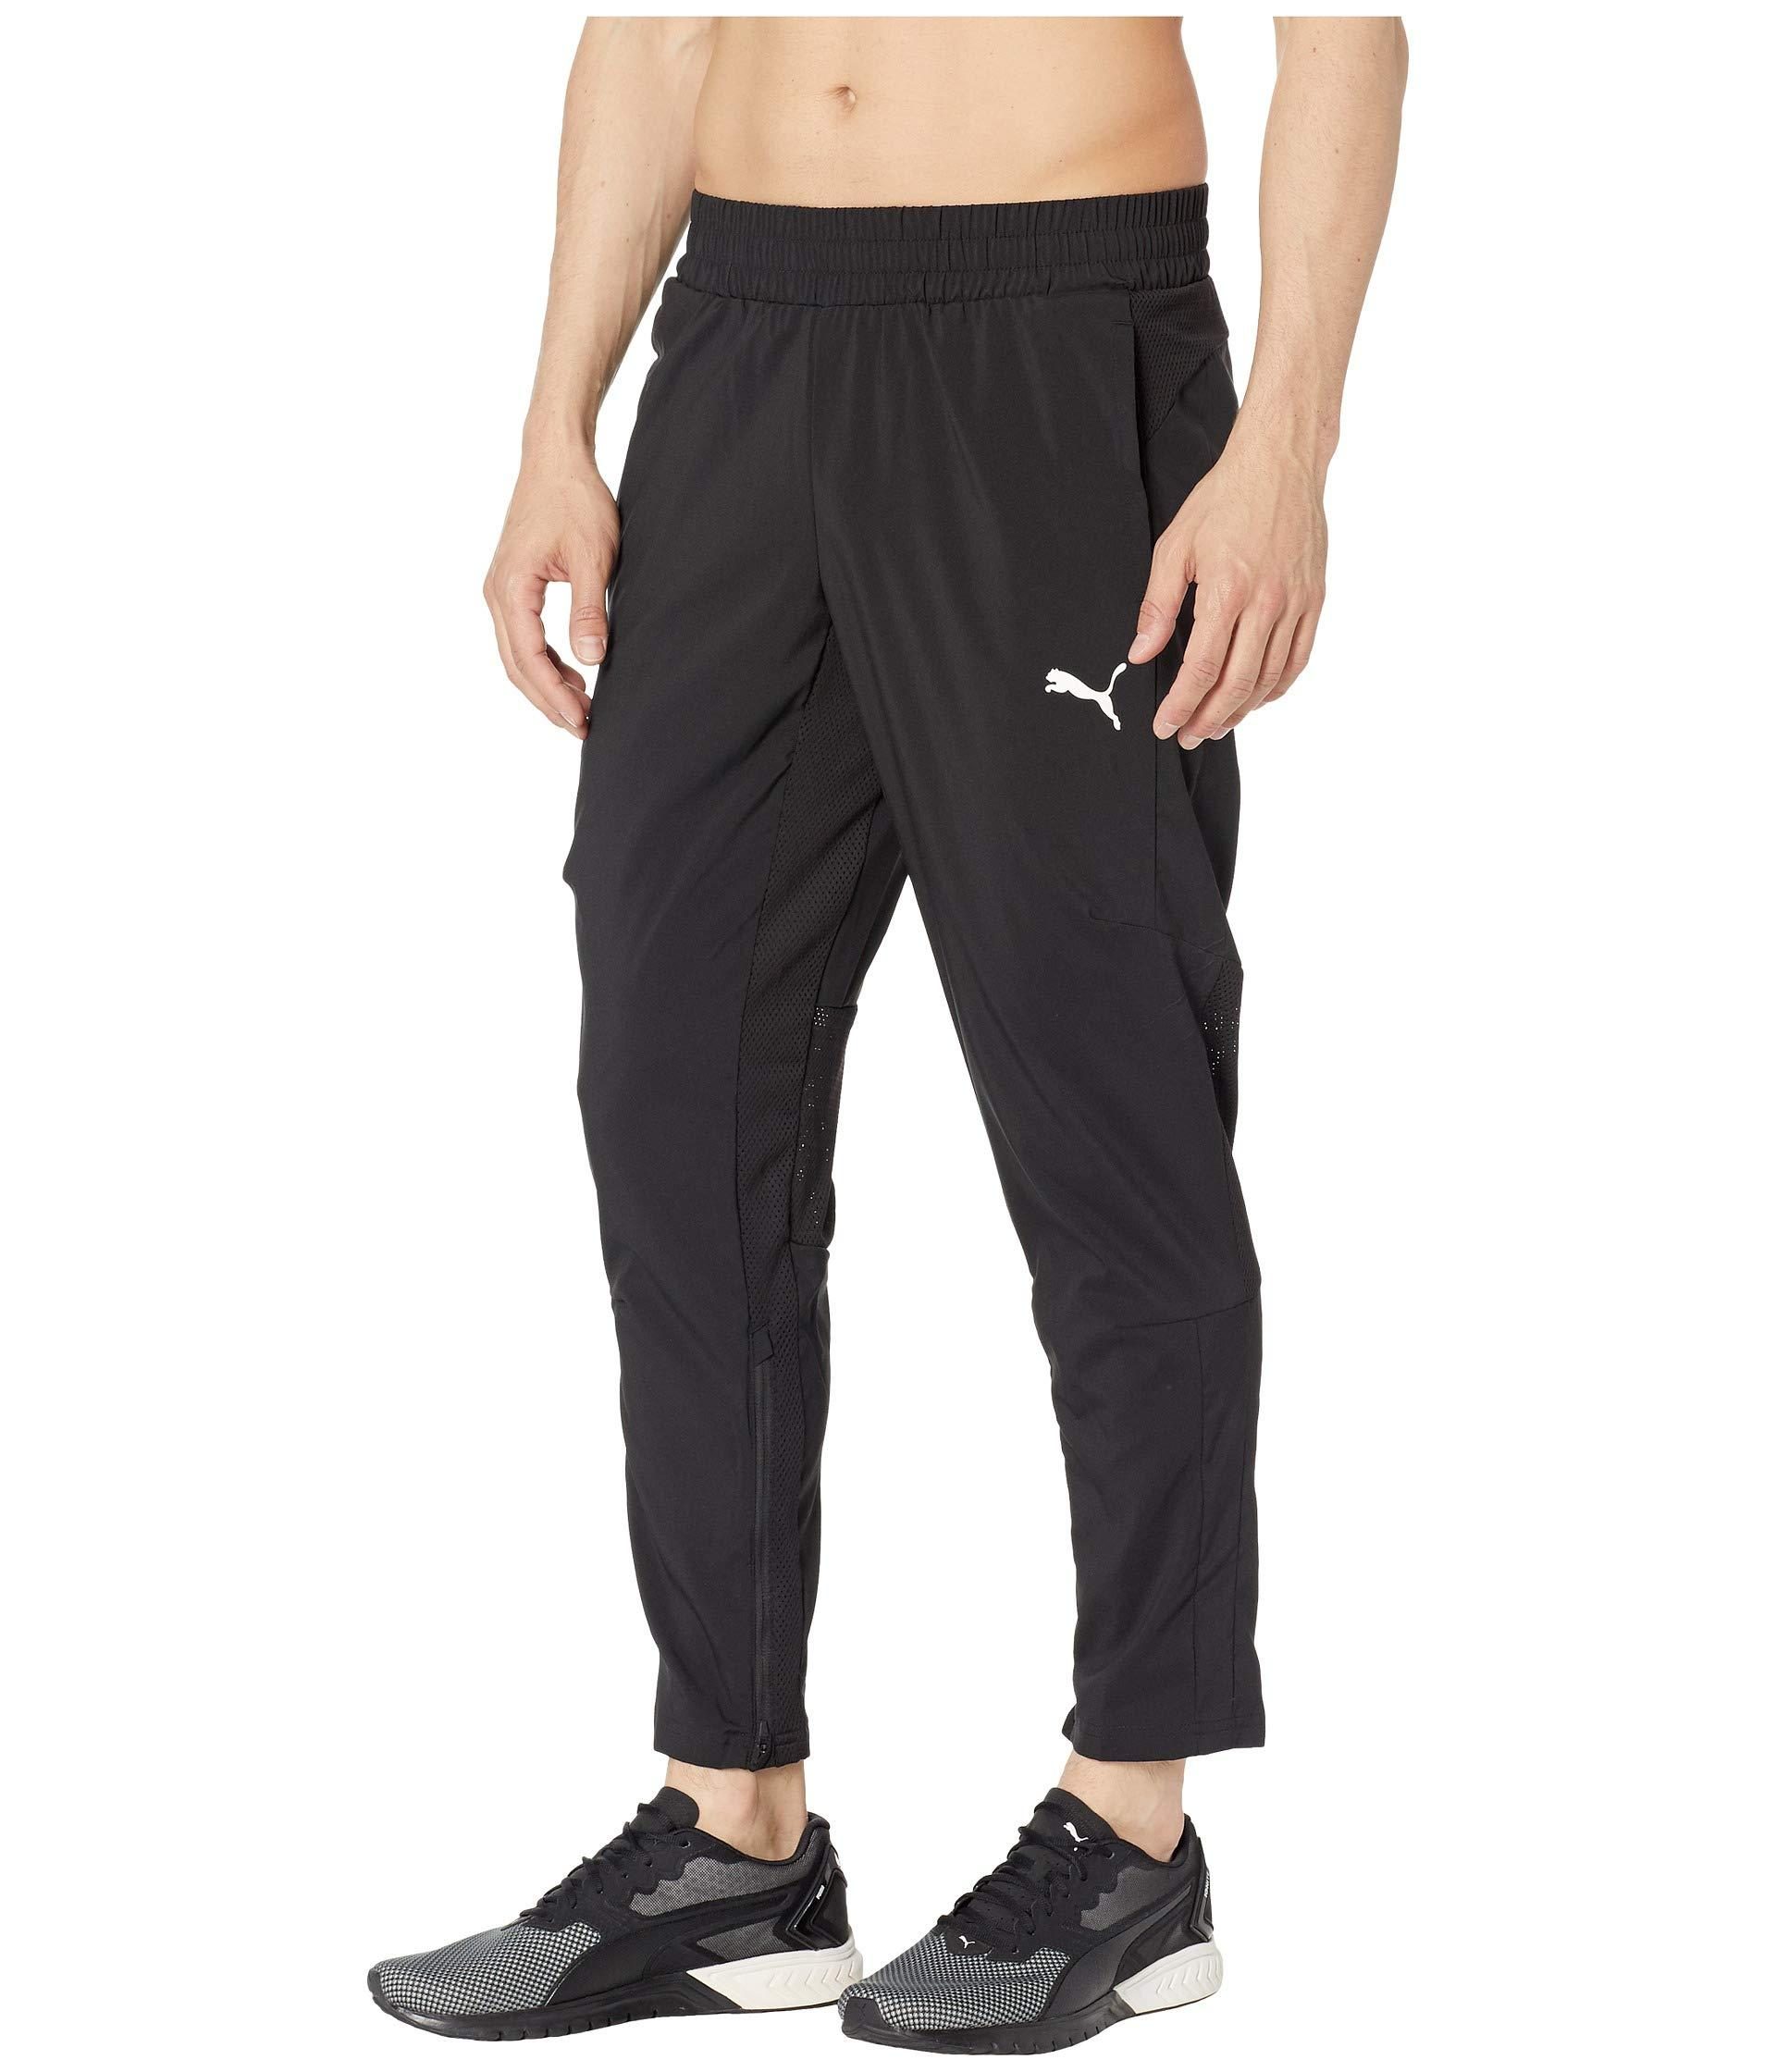 30c1e0bf82d3 Lyst - PUMA Energy Woven Pants in Black for Men